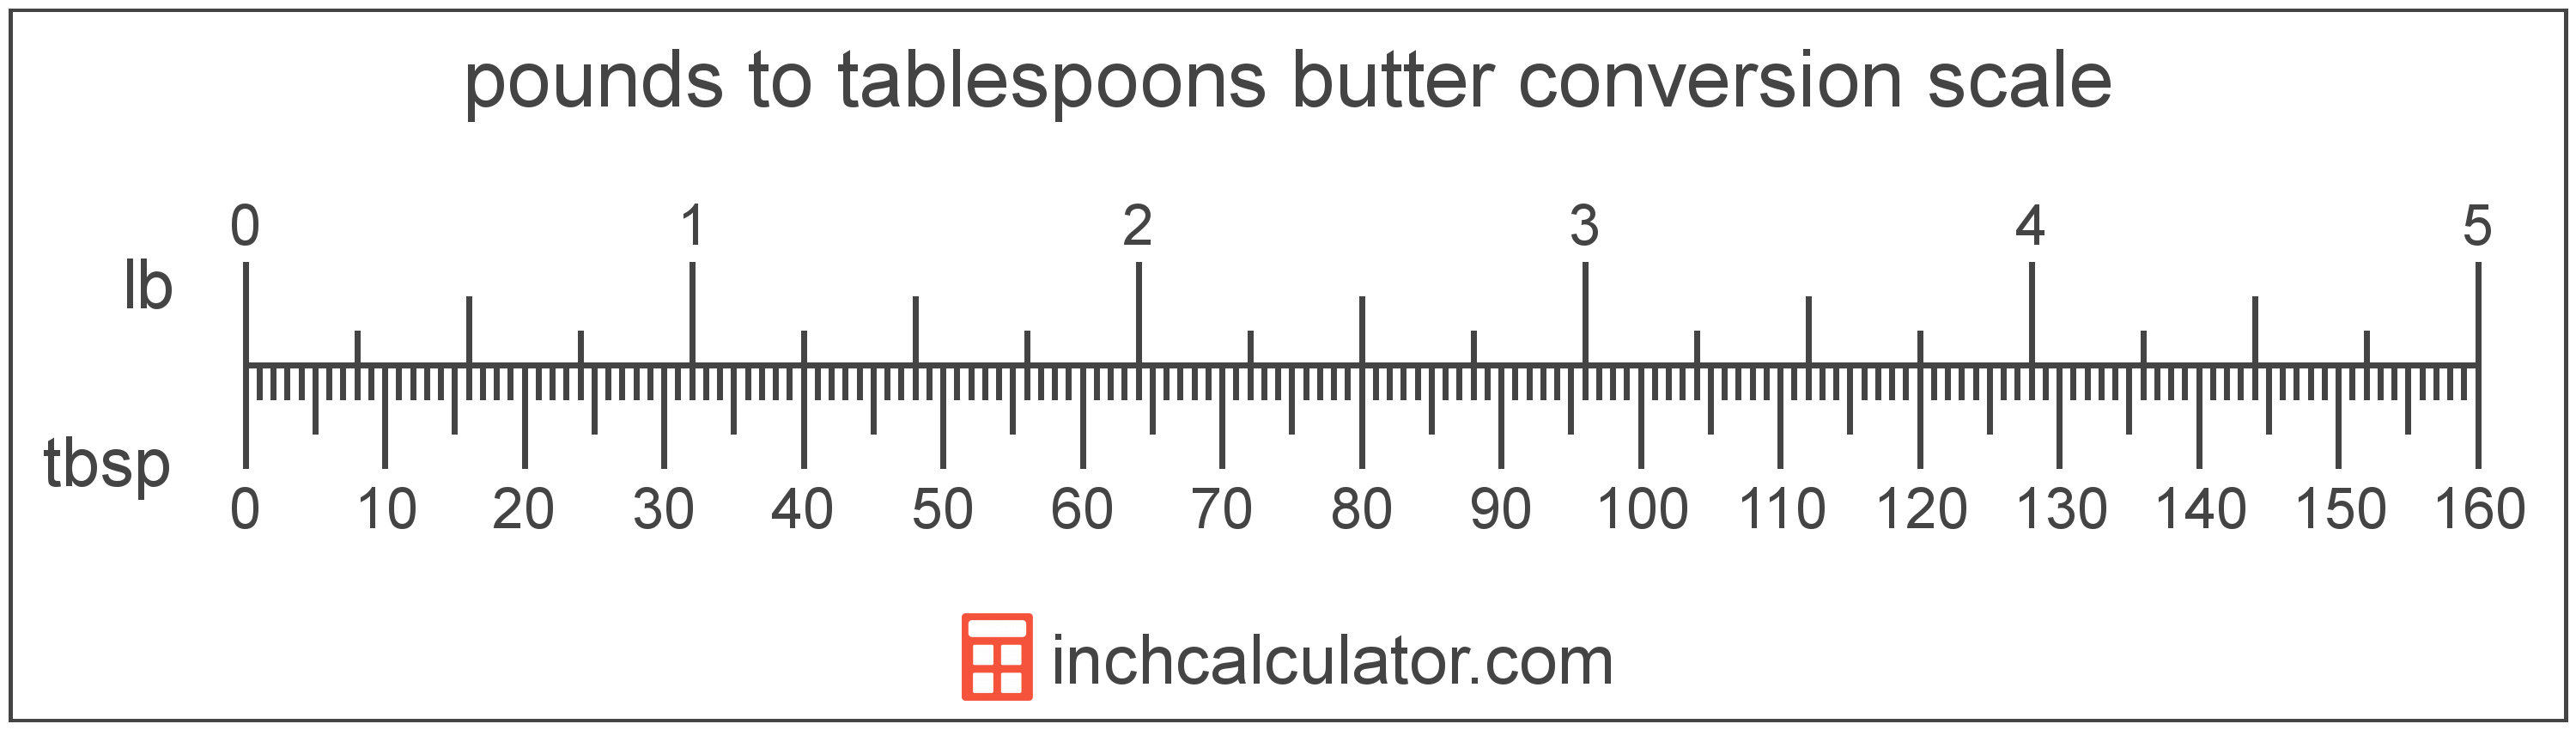 conversion scale showing pounds and equivalent tablespoons butter values